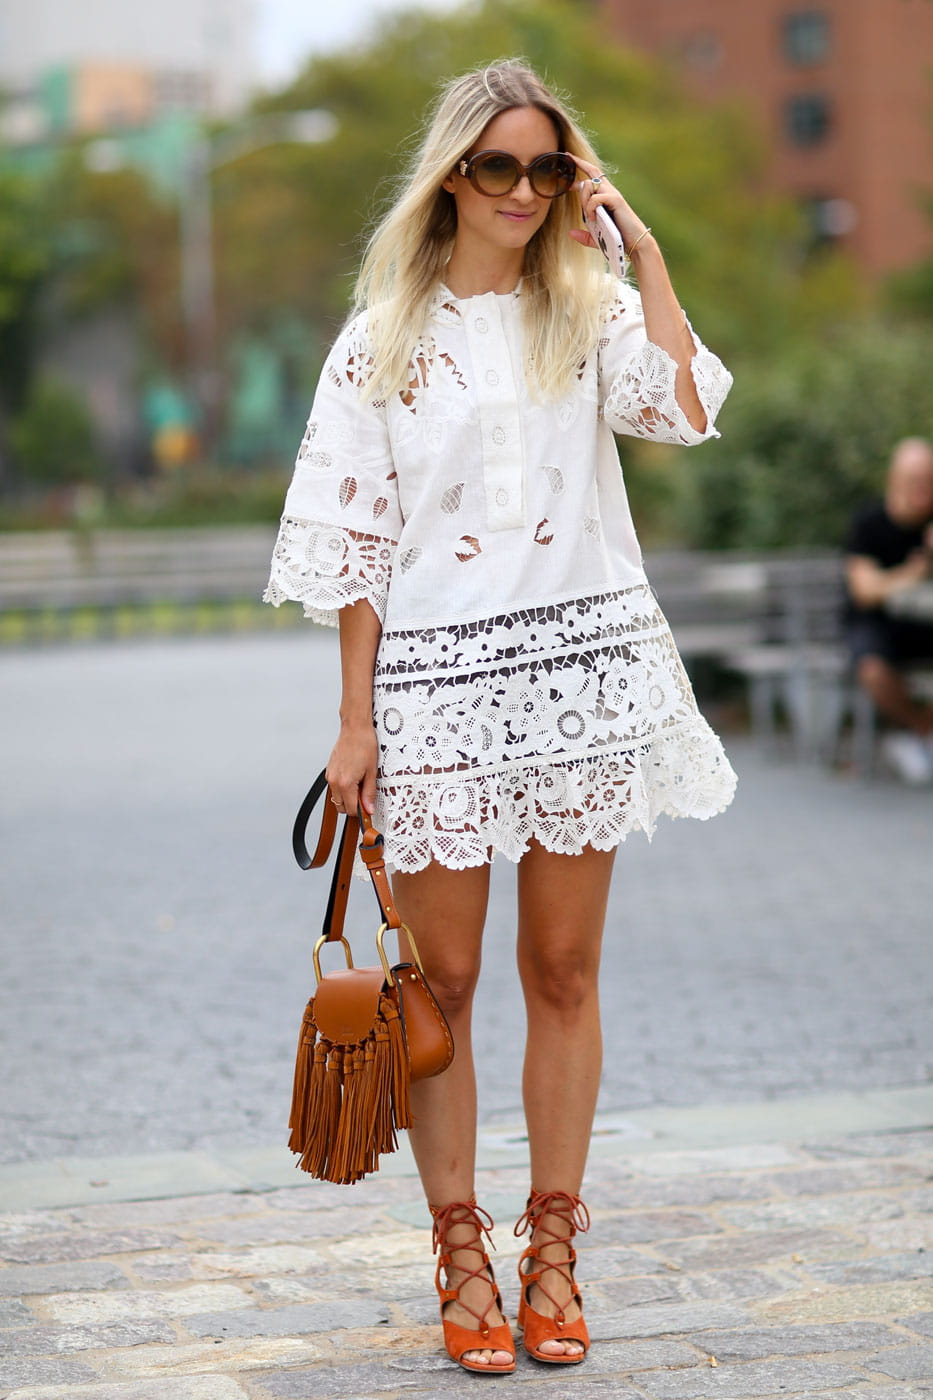 Street Style New York Look Hippie Chic Fashion Week Printemps T 2016 Les Plus Beaux